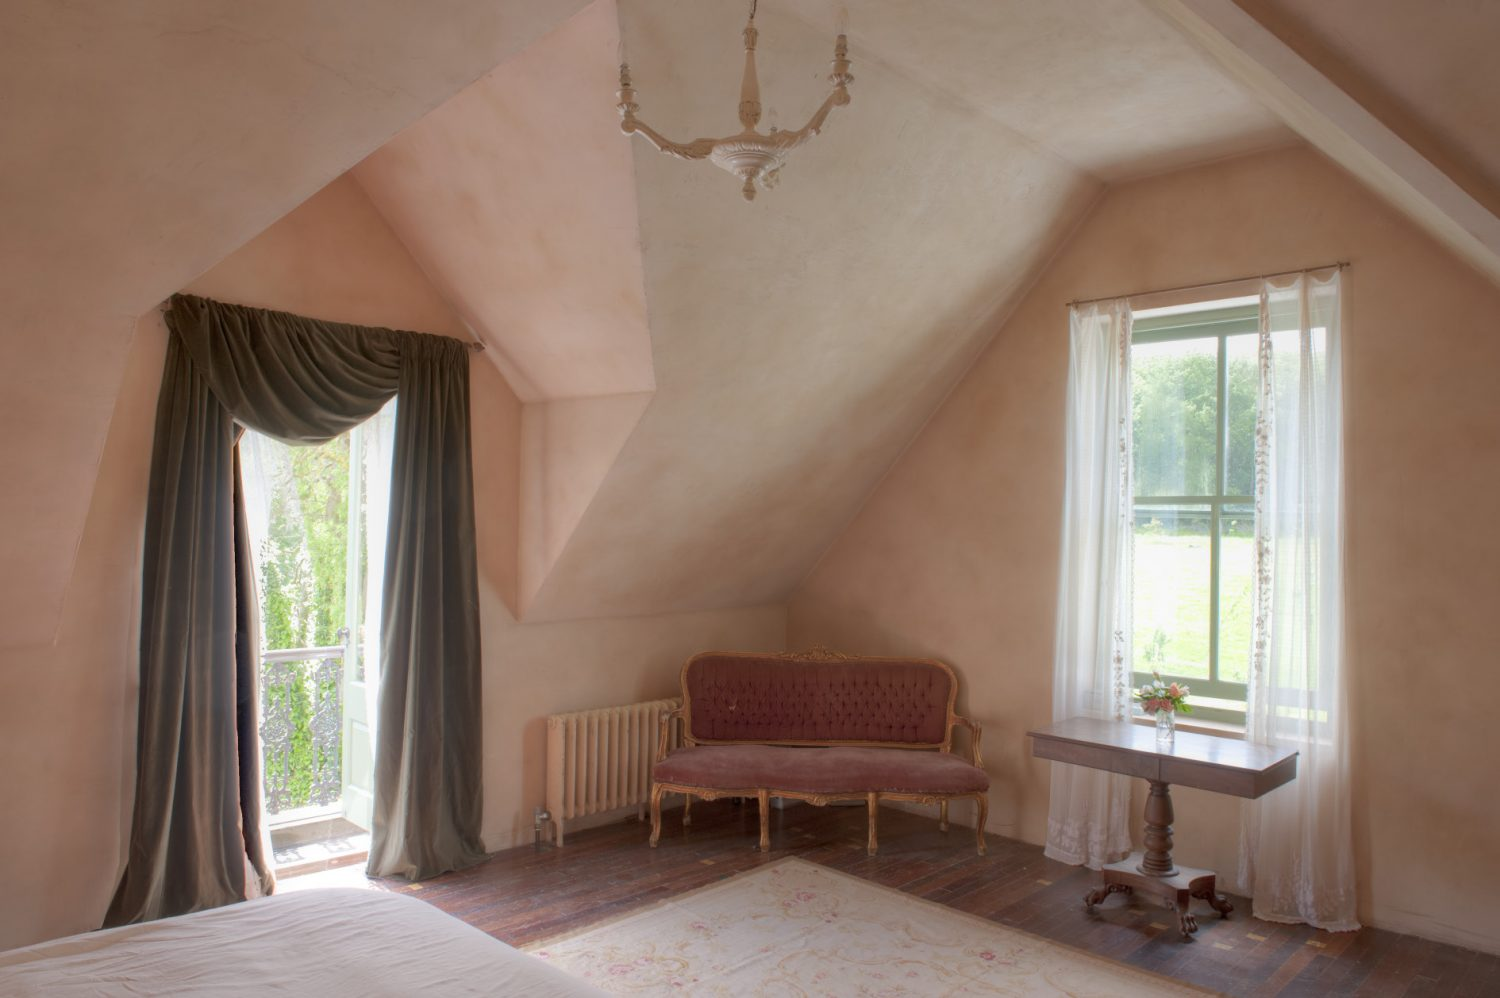 A huge bed in the principal bedroom looks out across the meadow and woods through the window at its foot